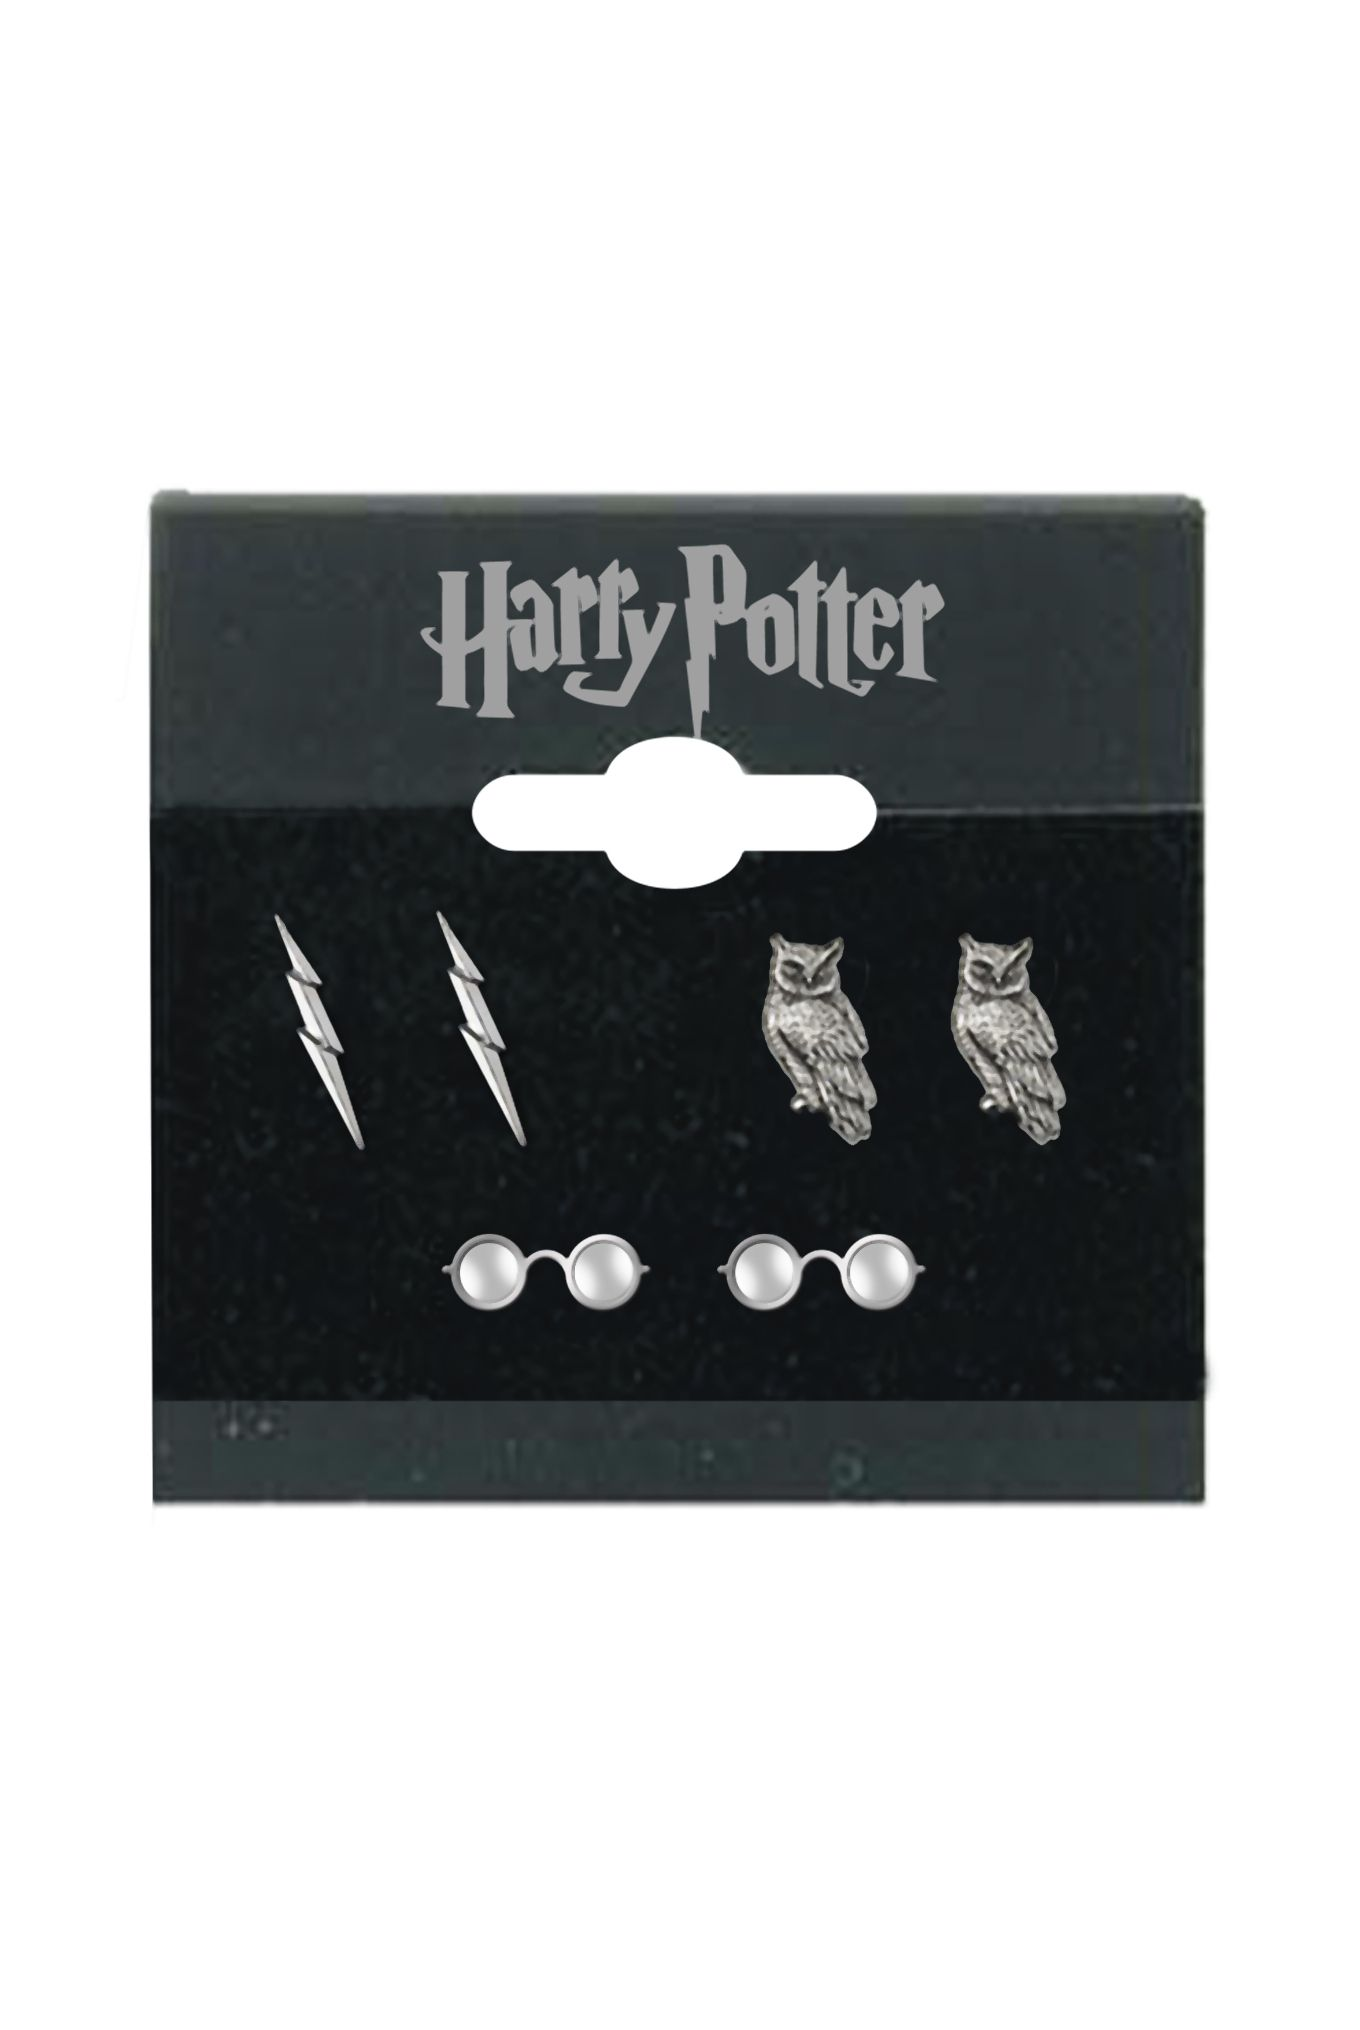 Harry Potter Stud Earrings 3 Pairs Hot Topic Harry Potter How